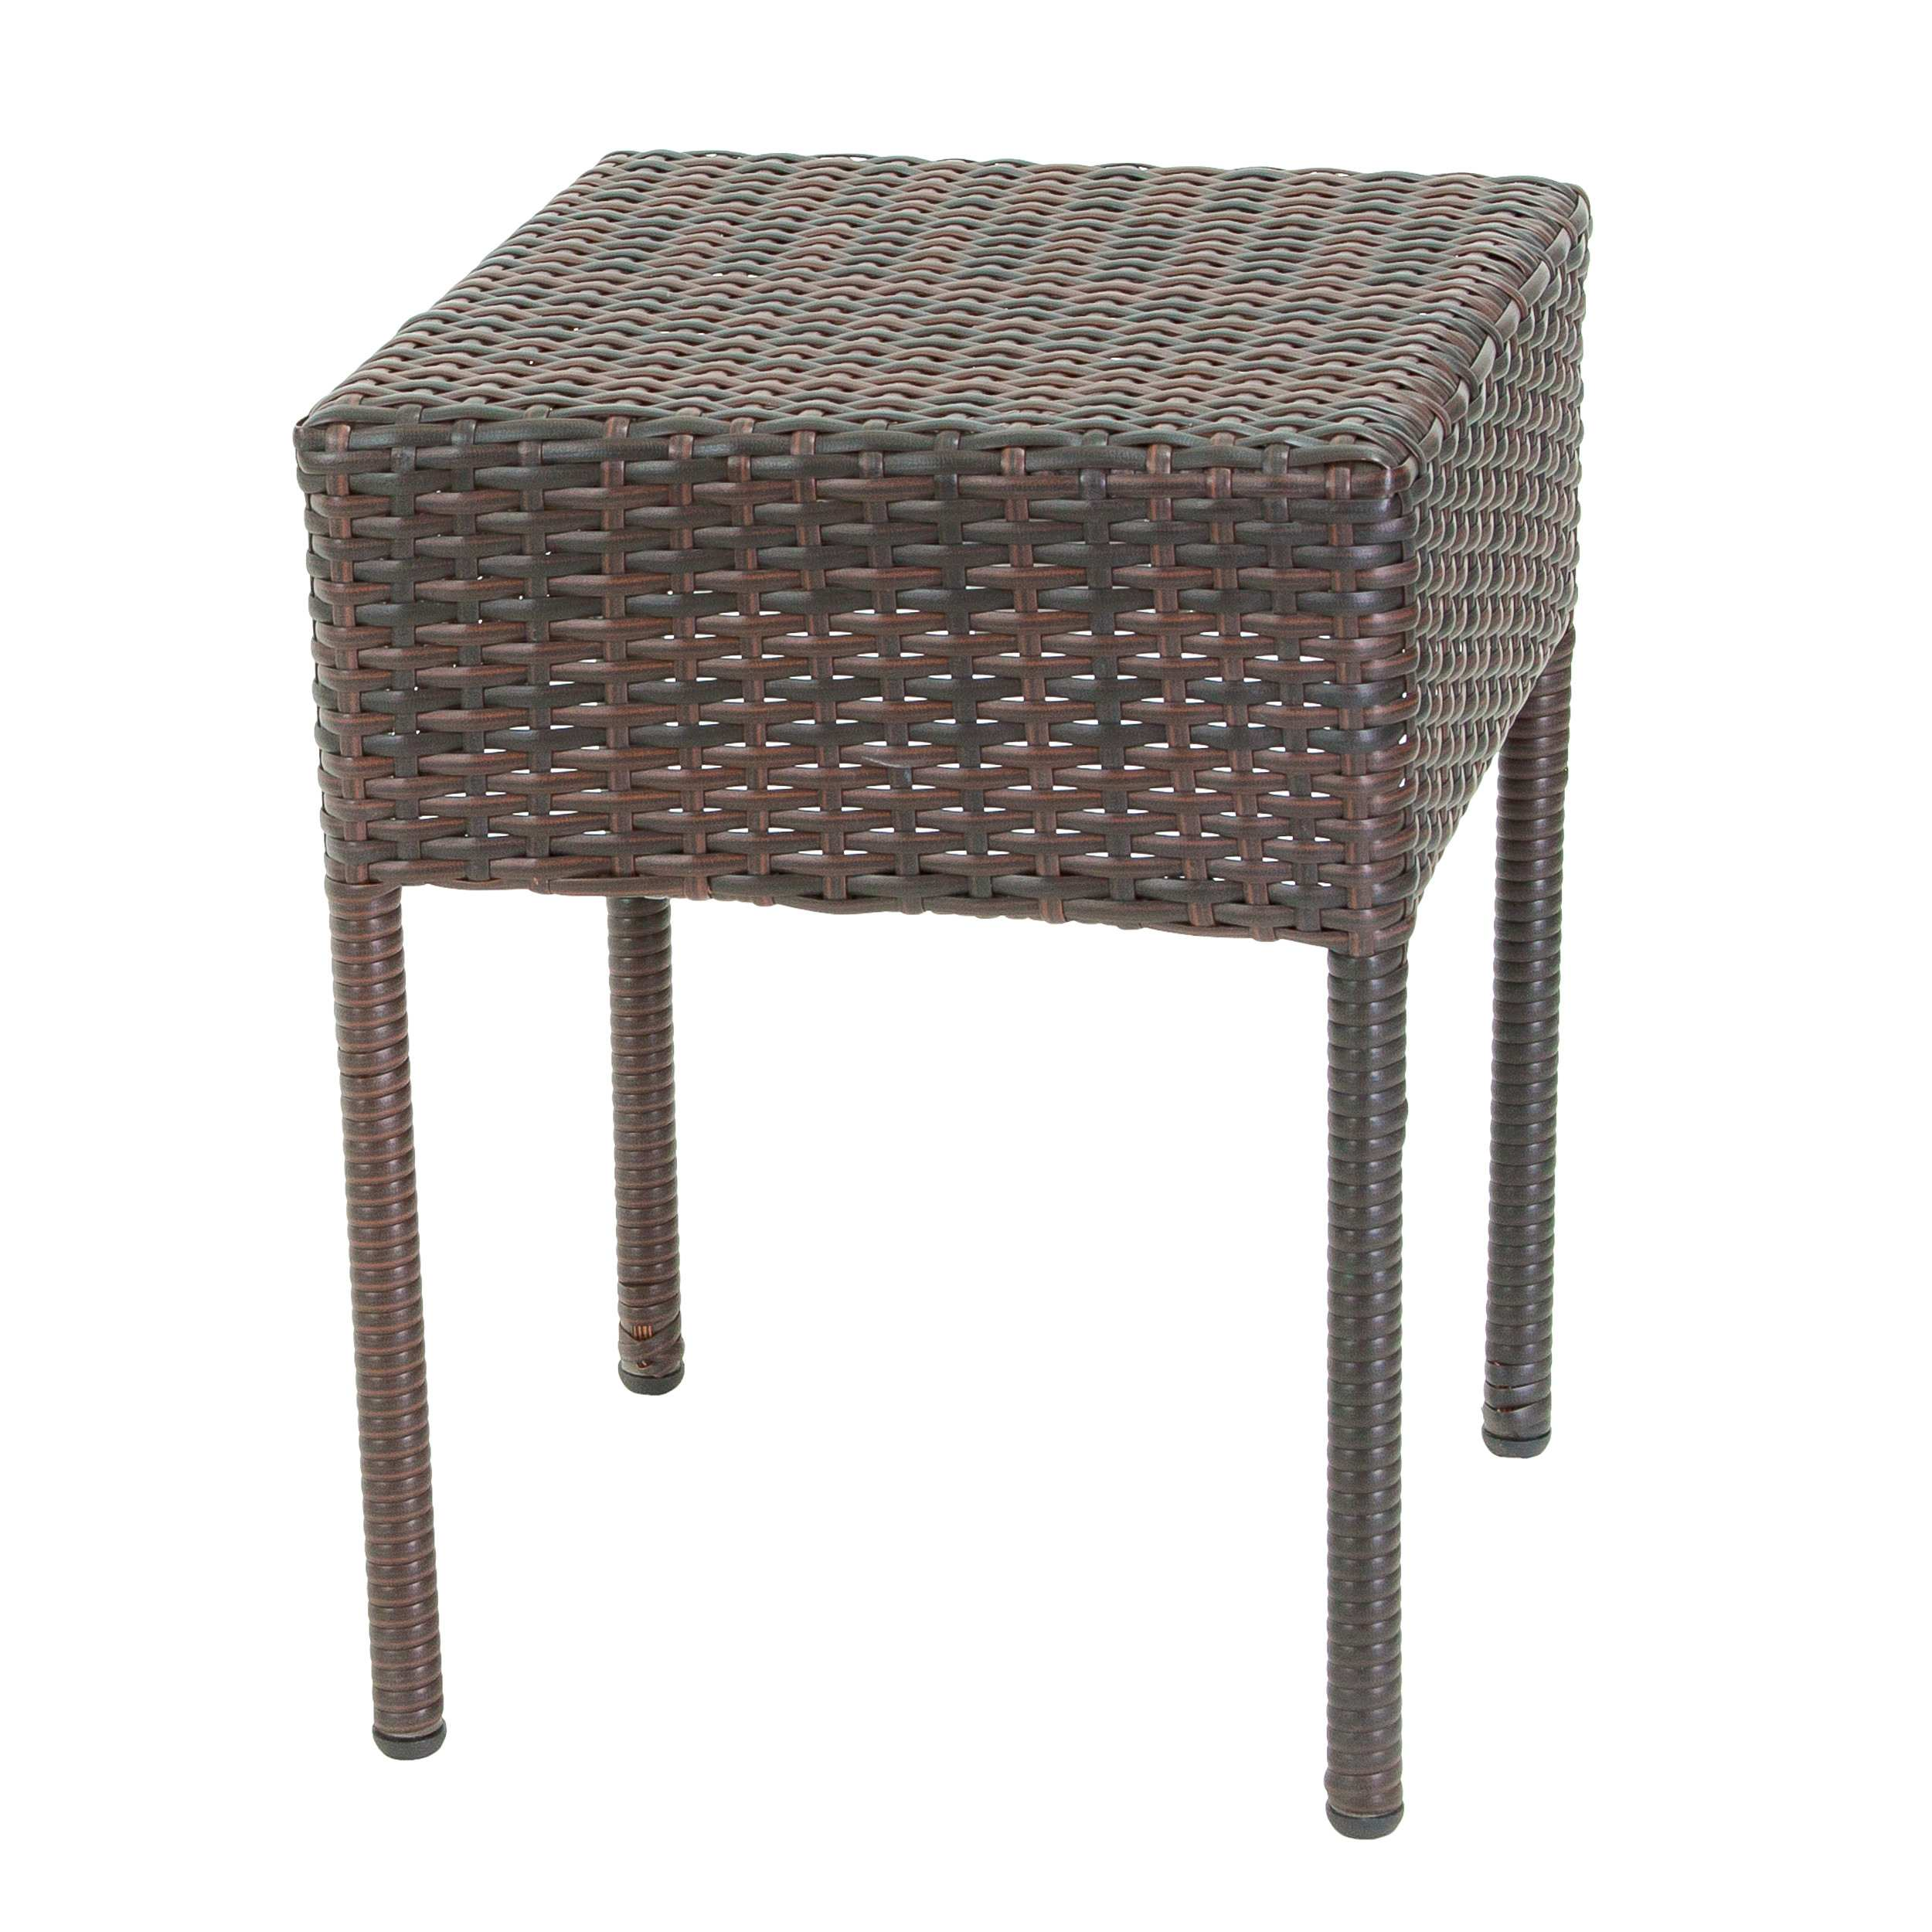 luxury gallery inspirations about threshold wicker patio storage beautiful accent table from hton bay woodbury piece set entryway stand target kids beds under couch montrez gold